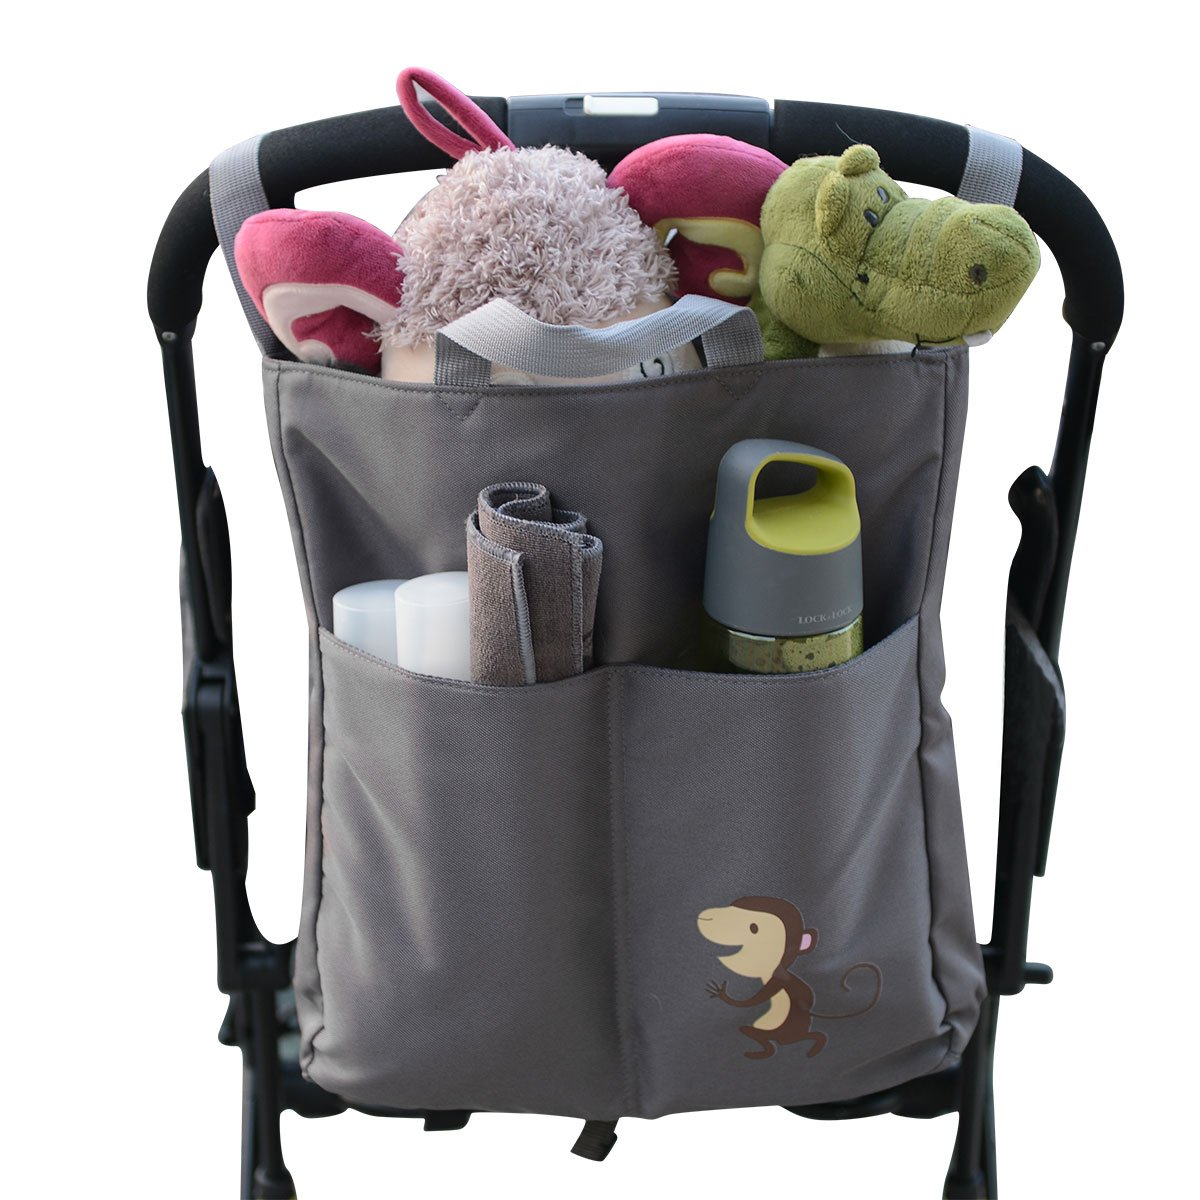 3 in 1 Multifunctional Stroller Organizer with Shoulder Strap, Baby Stroller Bag with Extra-Large Storage Space for iPhones, Wallets, Diapers, Books, Toys, Shoulder bag and Tote Bag by Yotree